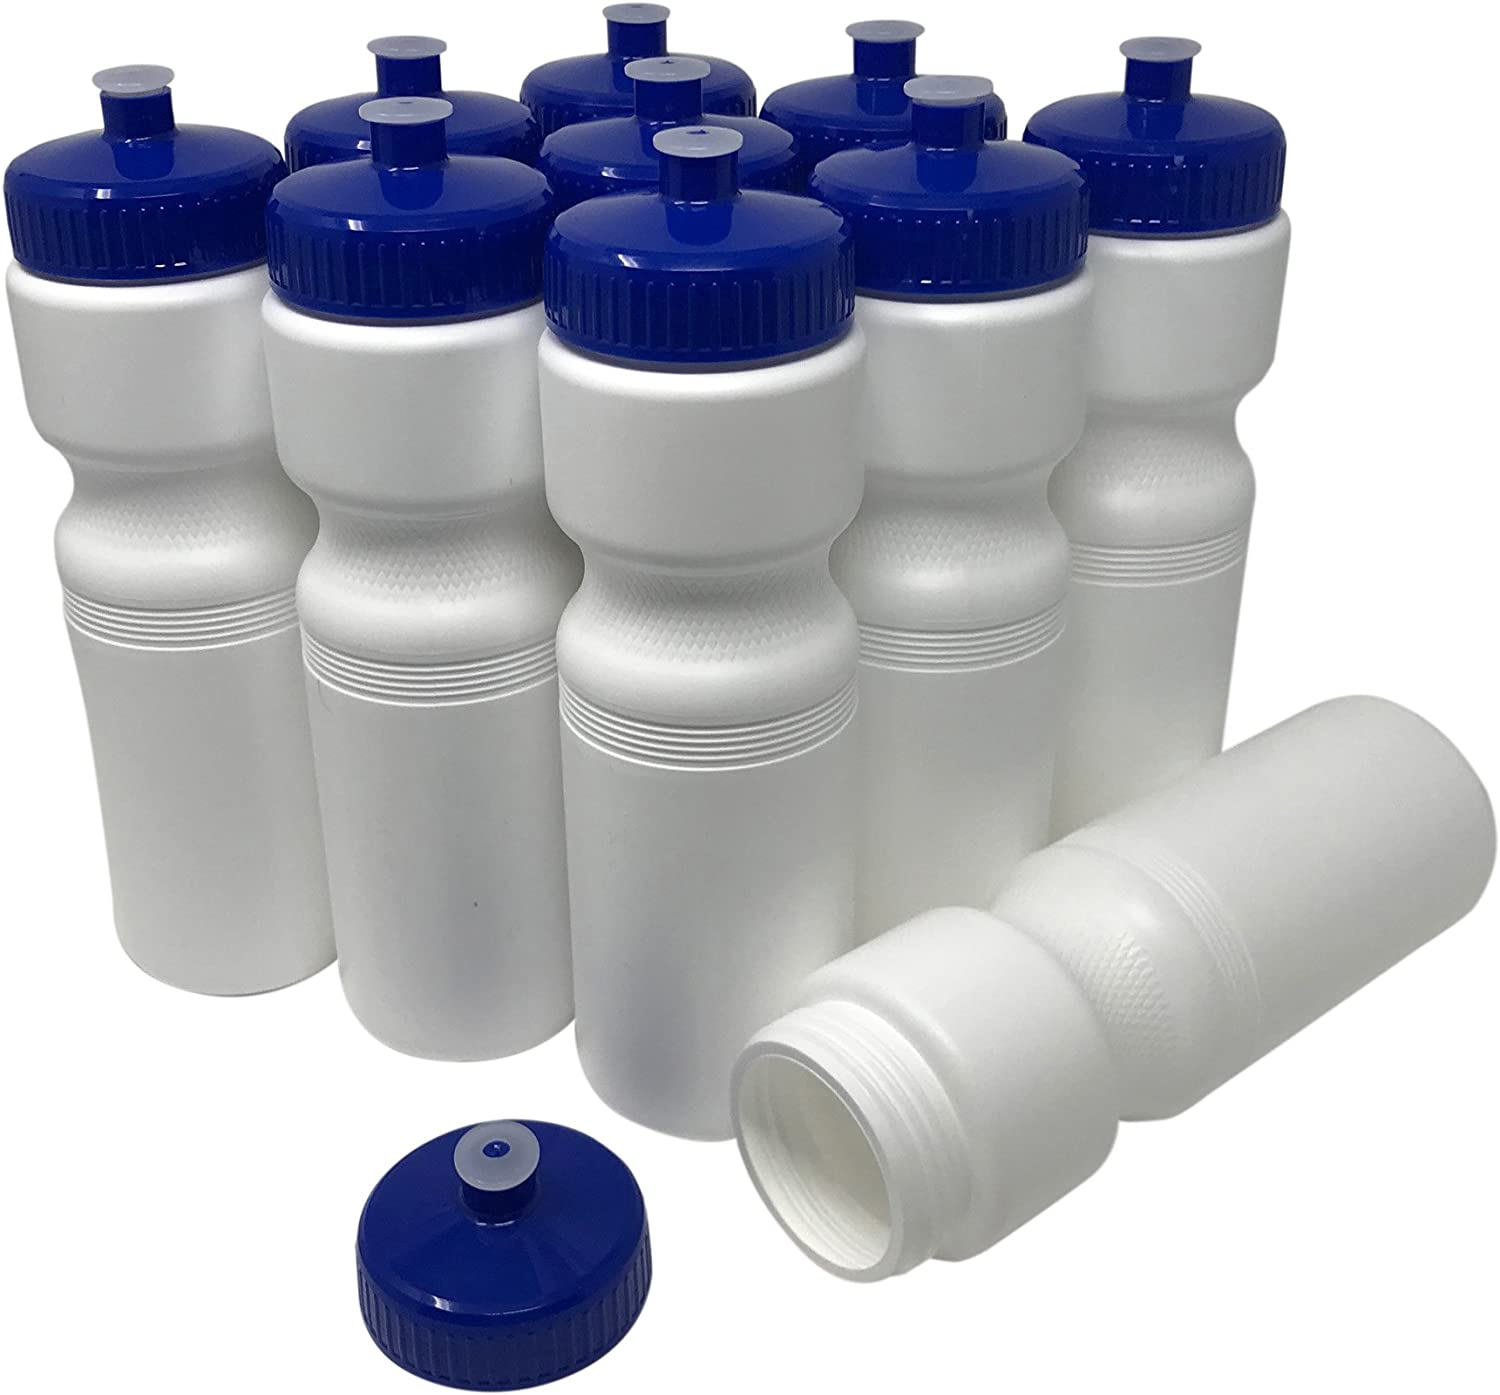 CSBD 28oz Sports Water Bottles, 10 Pack, Reusable No BPA Plastic, Pull Top Leakproof Drink Spout, Blank DIY Customization for Business Branding, Fundraises, or Fitness